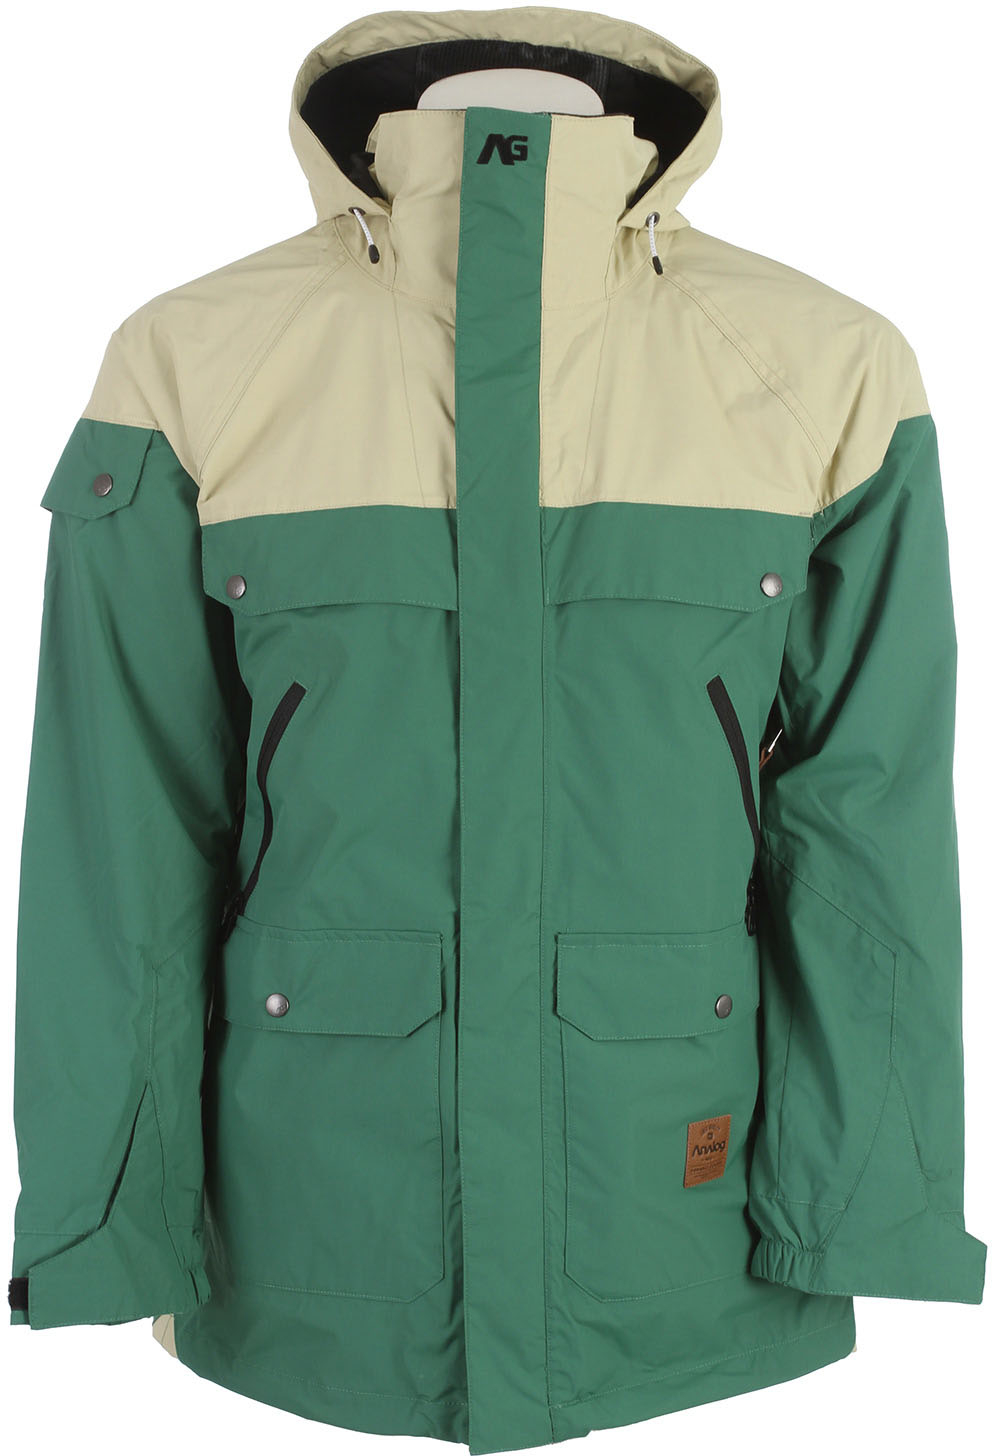 image analog-anthem-jacket-alpine-green-fog-jpg